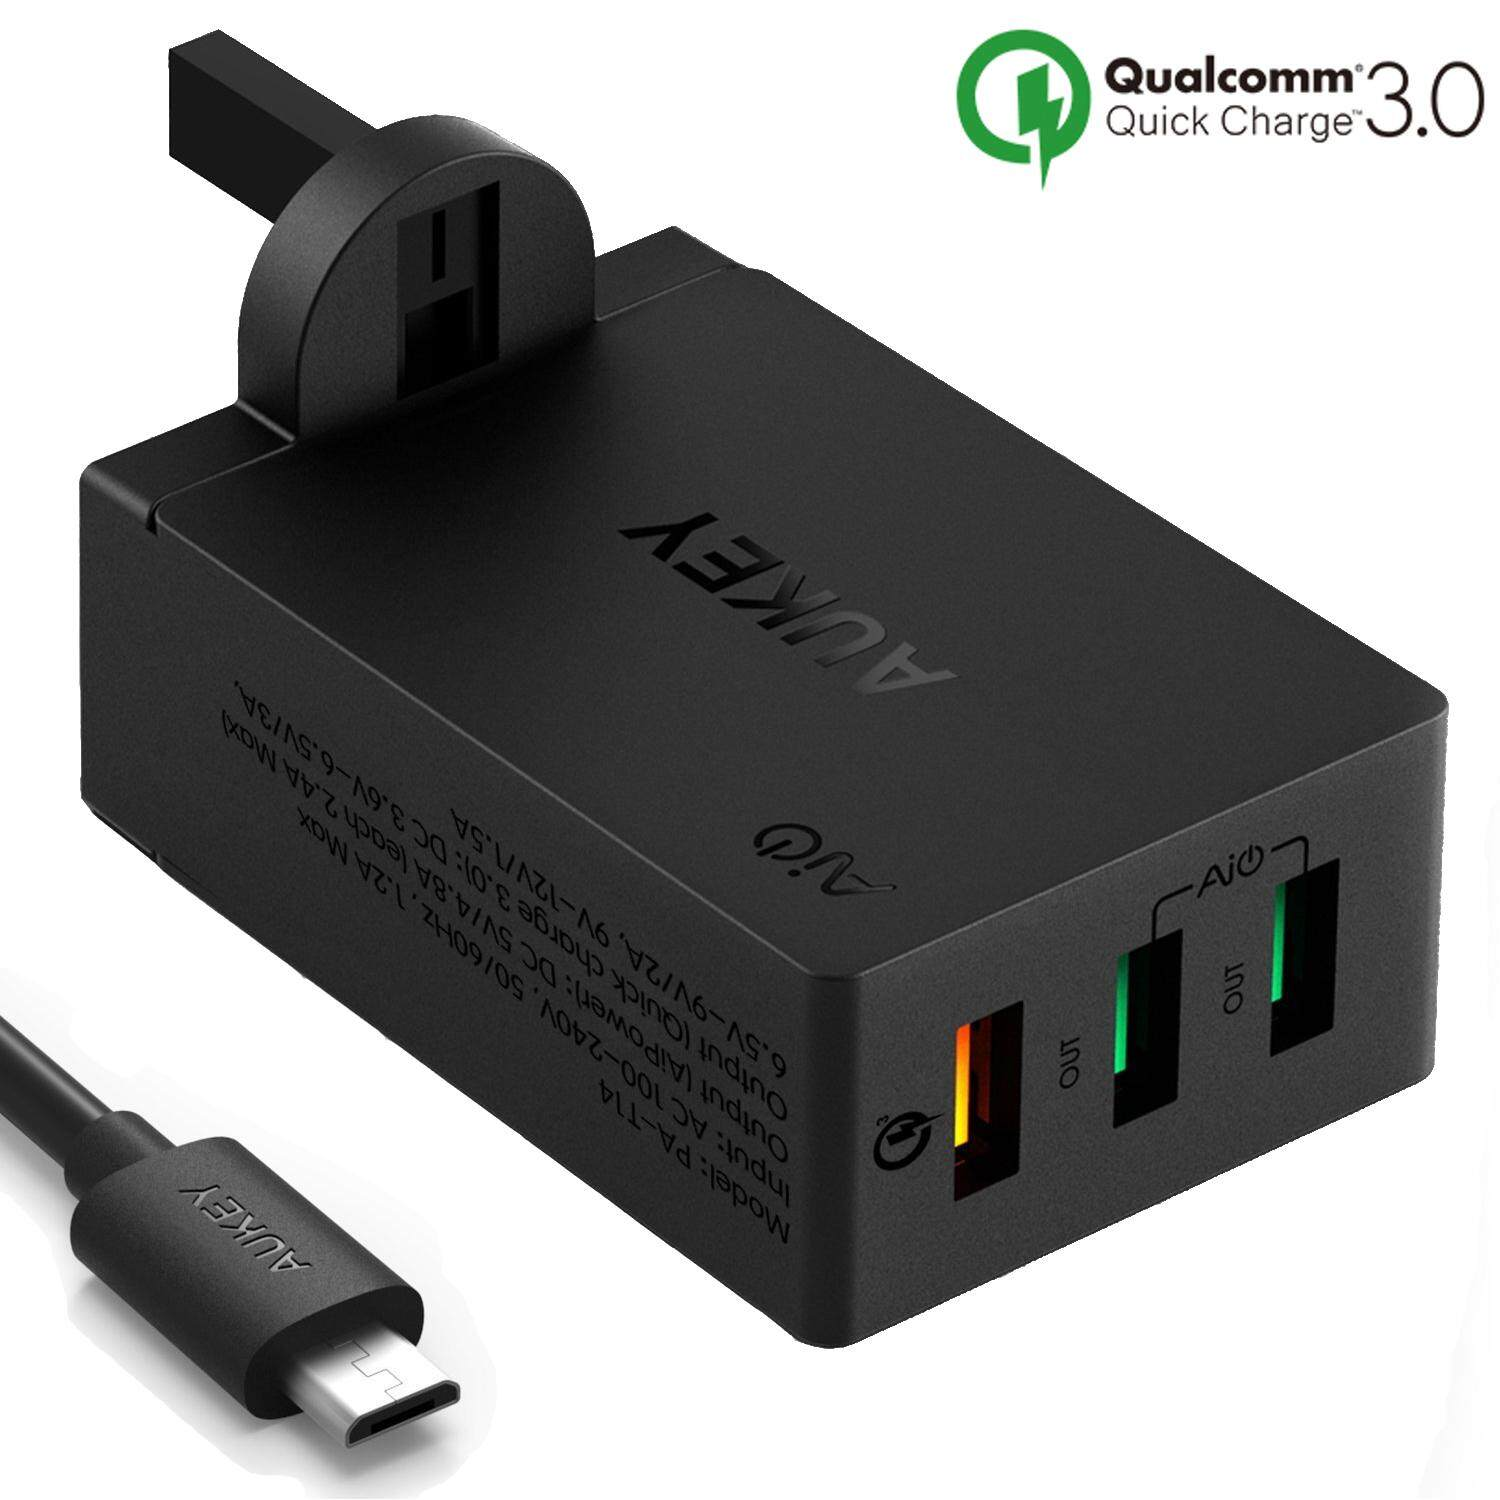 Promo Harga Aukey Cable Cb Md3 C Termurah 2018 Cd5 1m Usb To Quick Charge 30 Braided Nylon Mobile Accessories Price In Malaysia Best Pa T14 3 Port